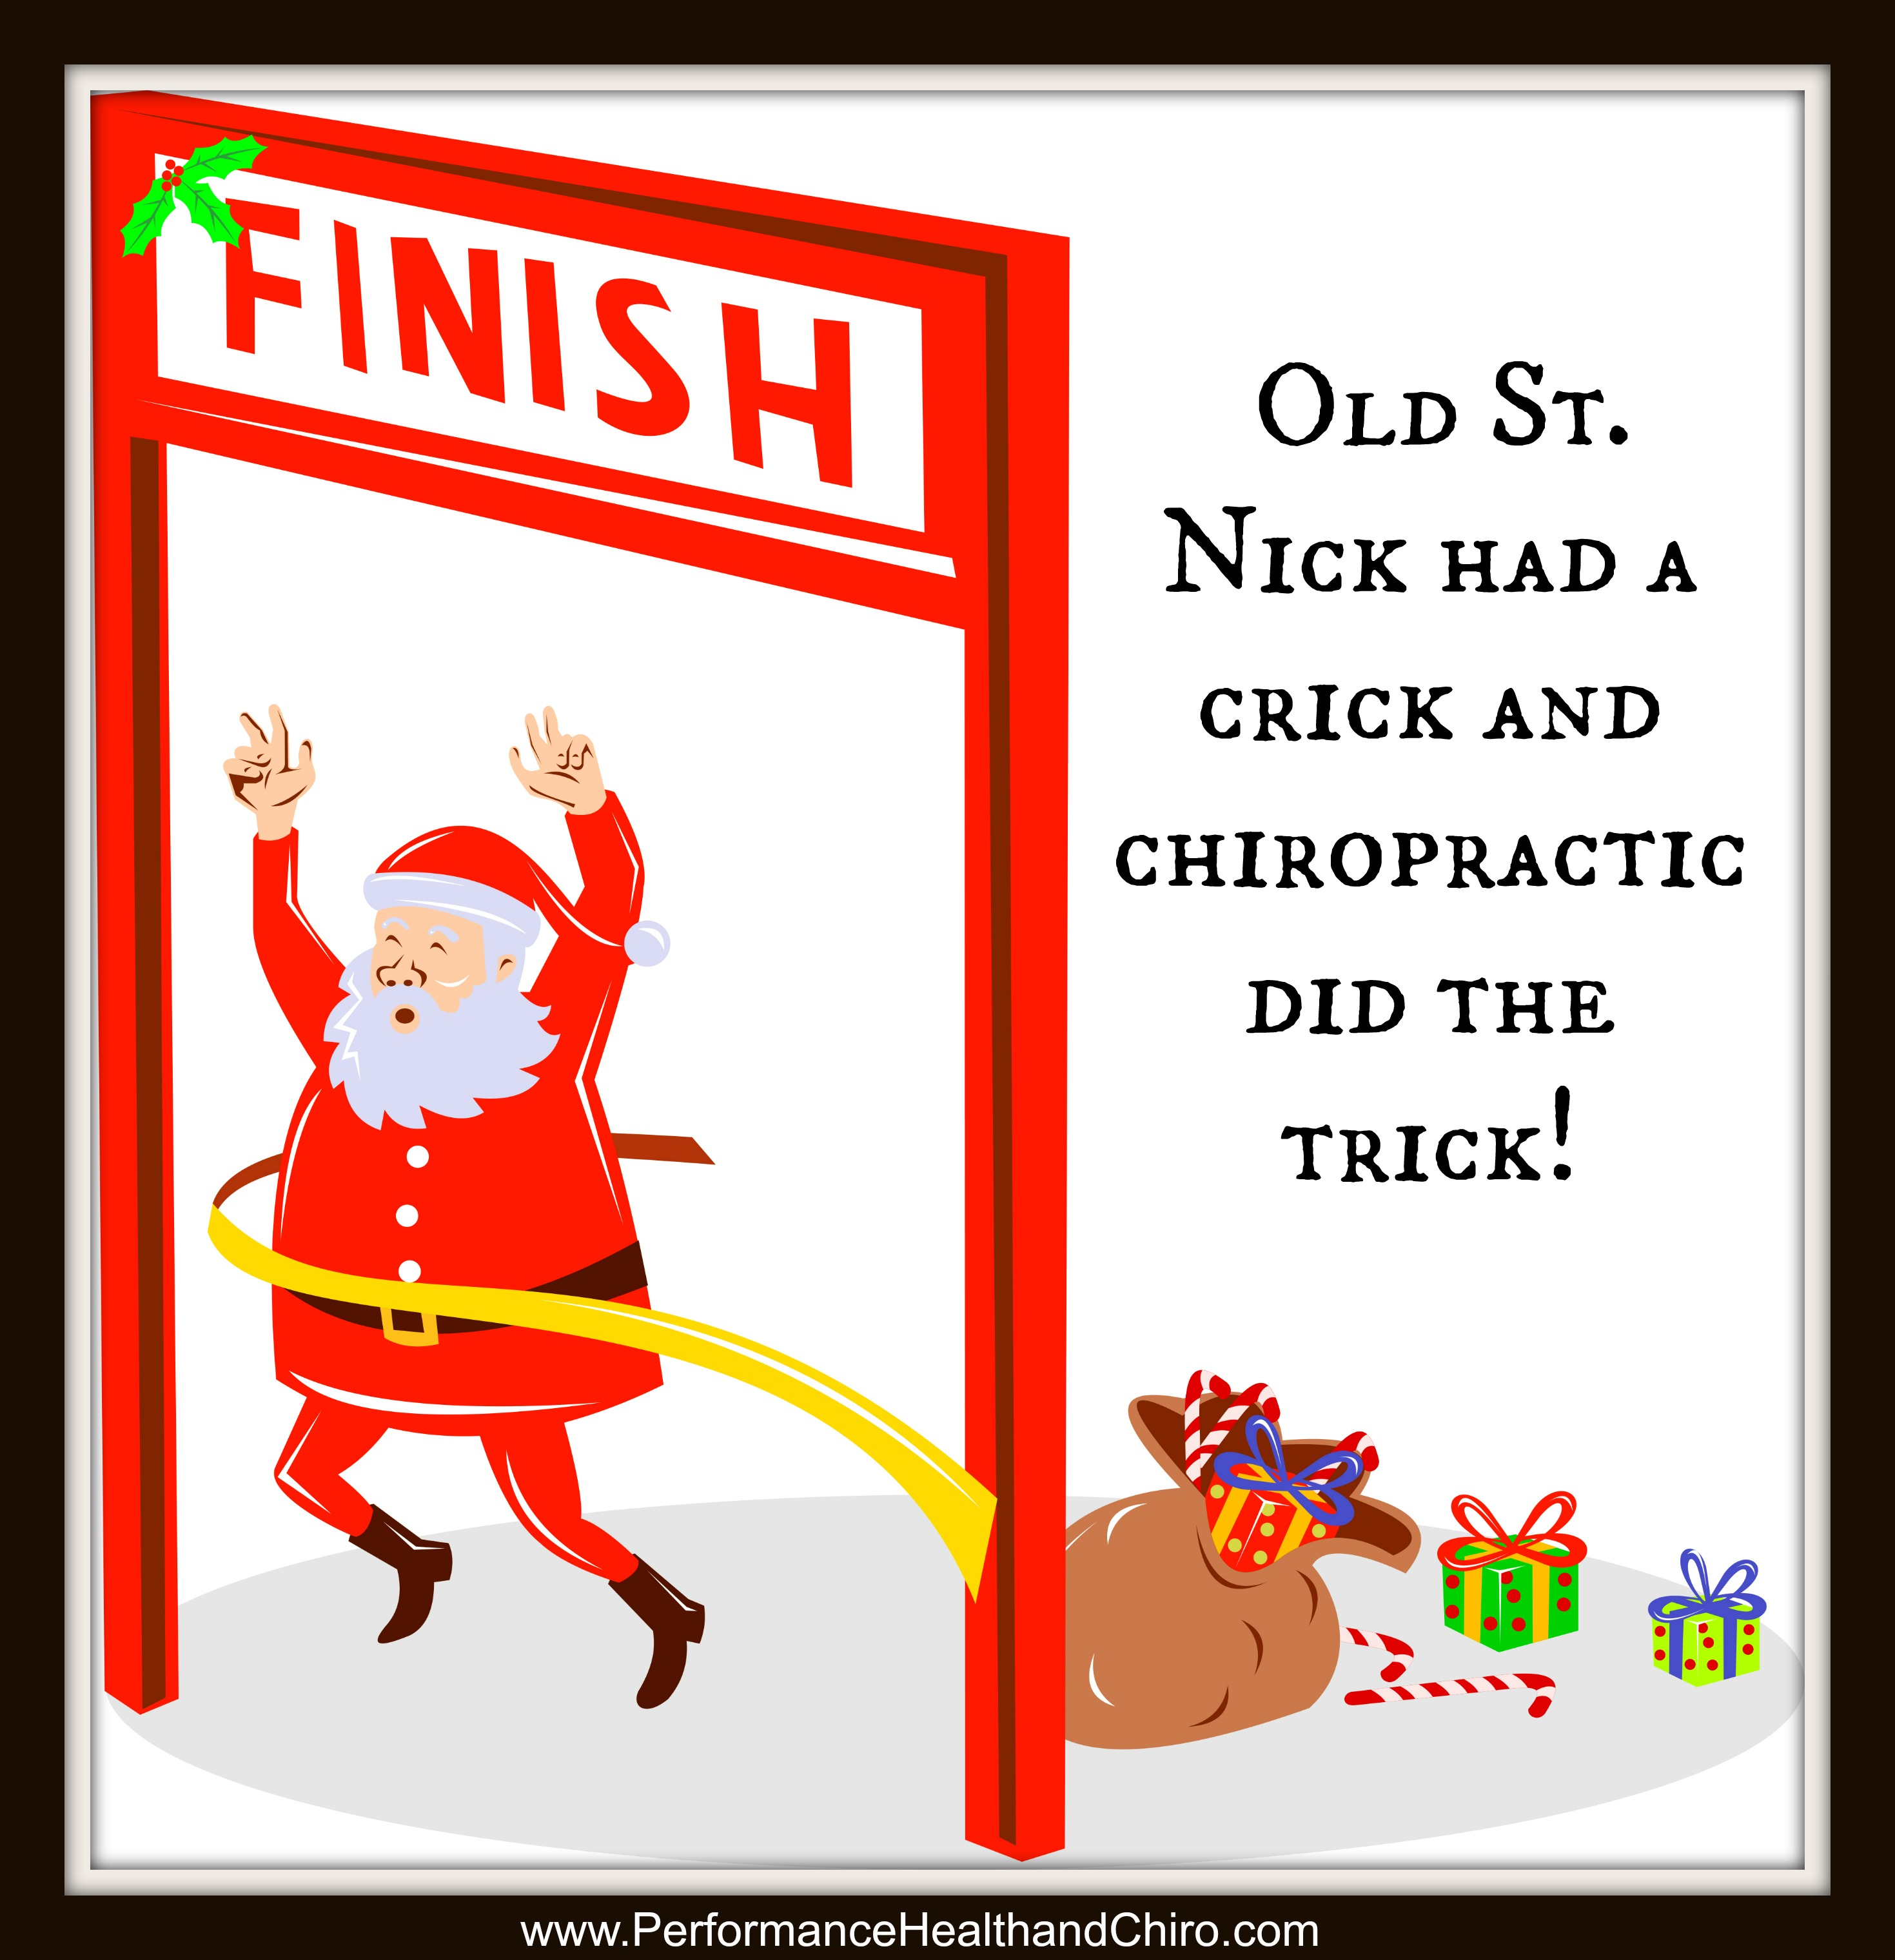 Old St. Nick Had A Crick And Chiropractic Did The Trick!